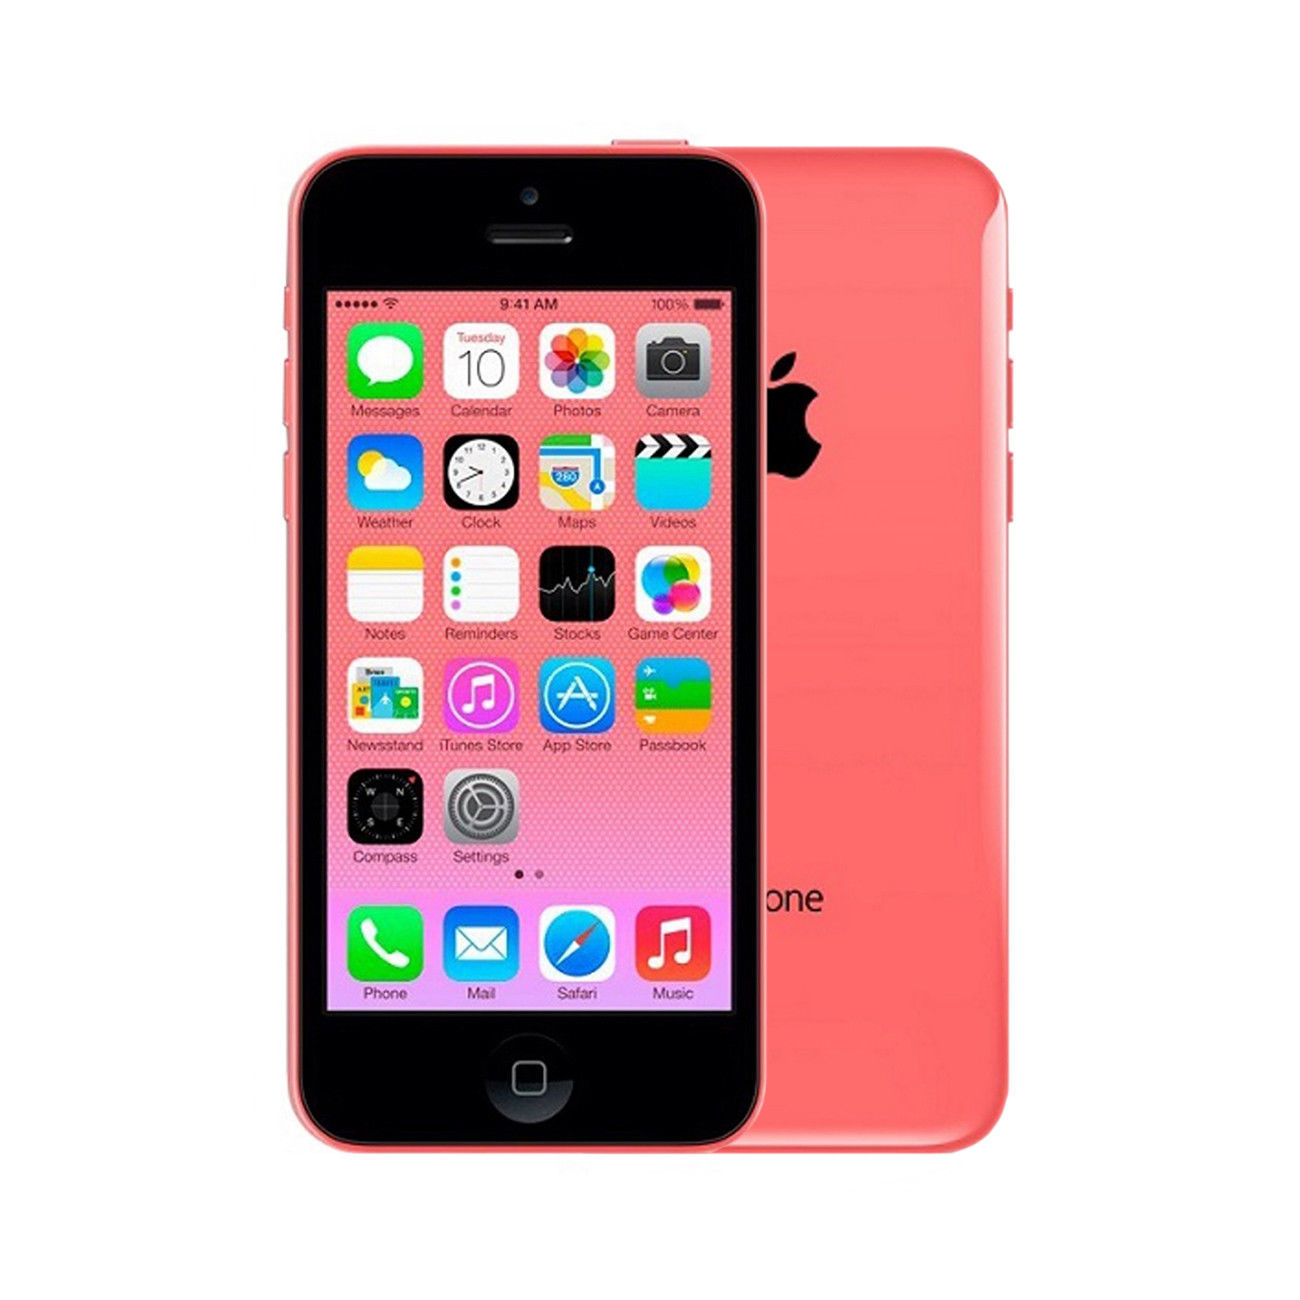 Apple iPhone 5c [32GB] [Pink] [Imperfect]